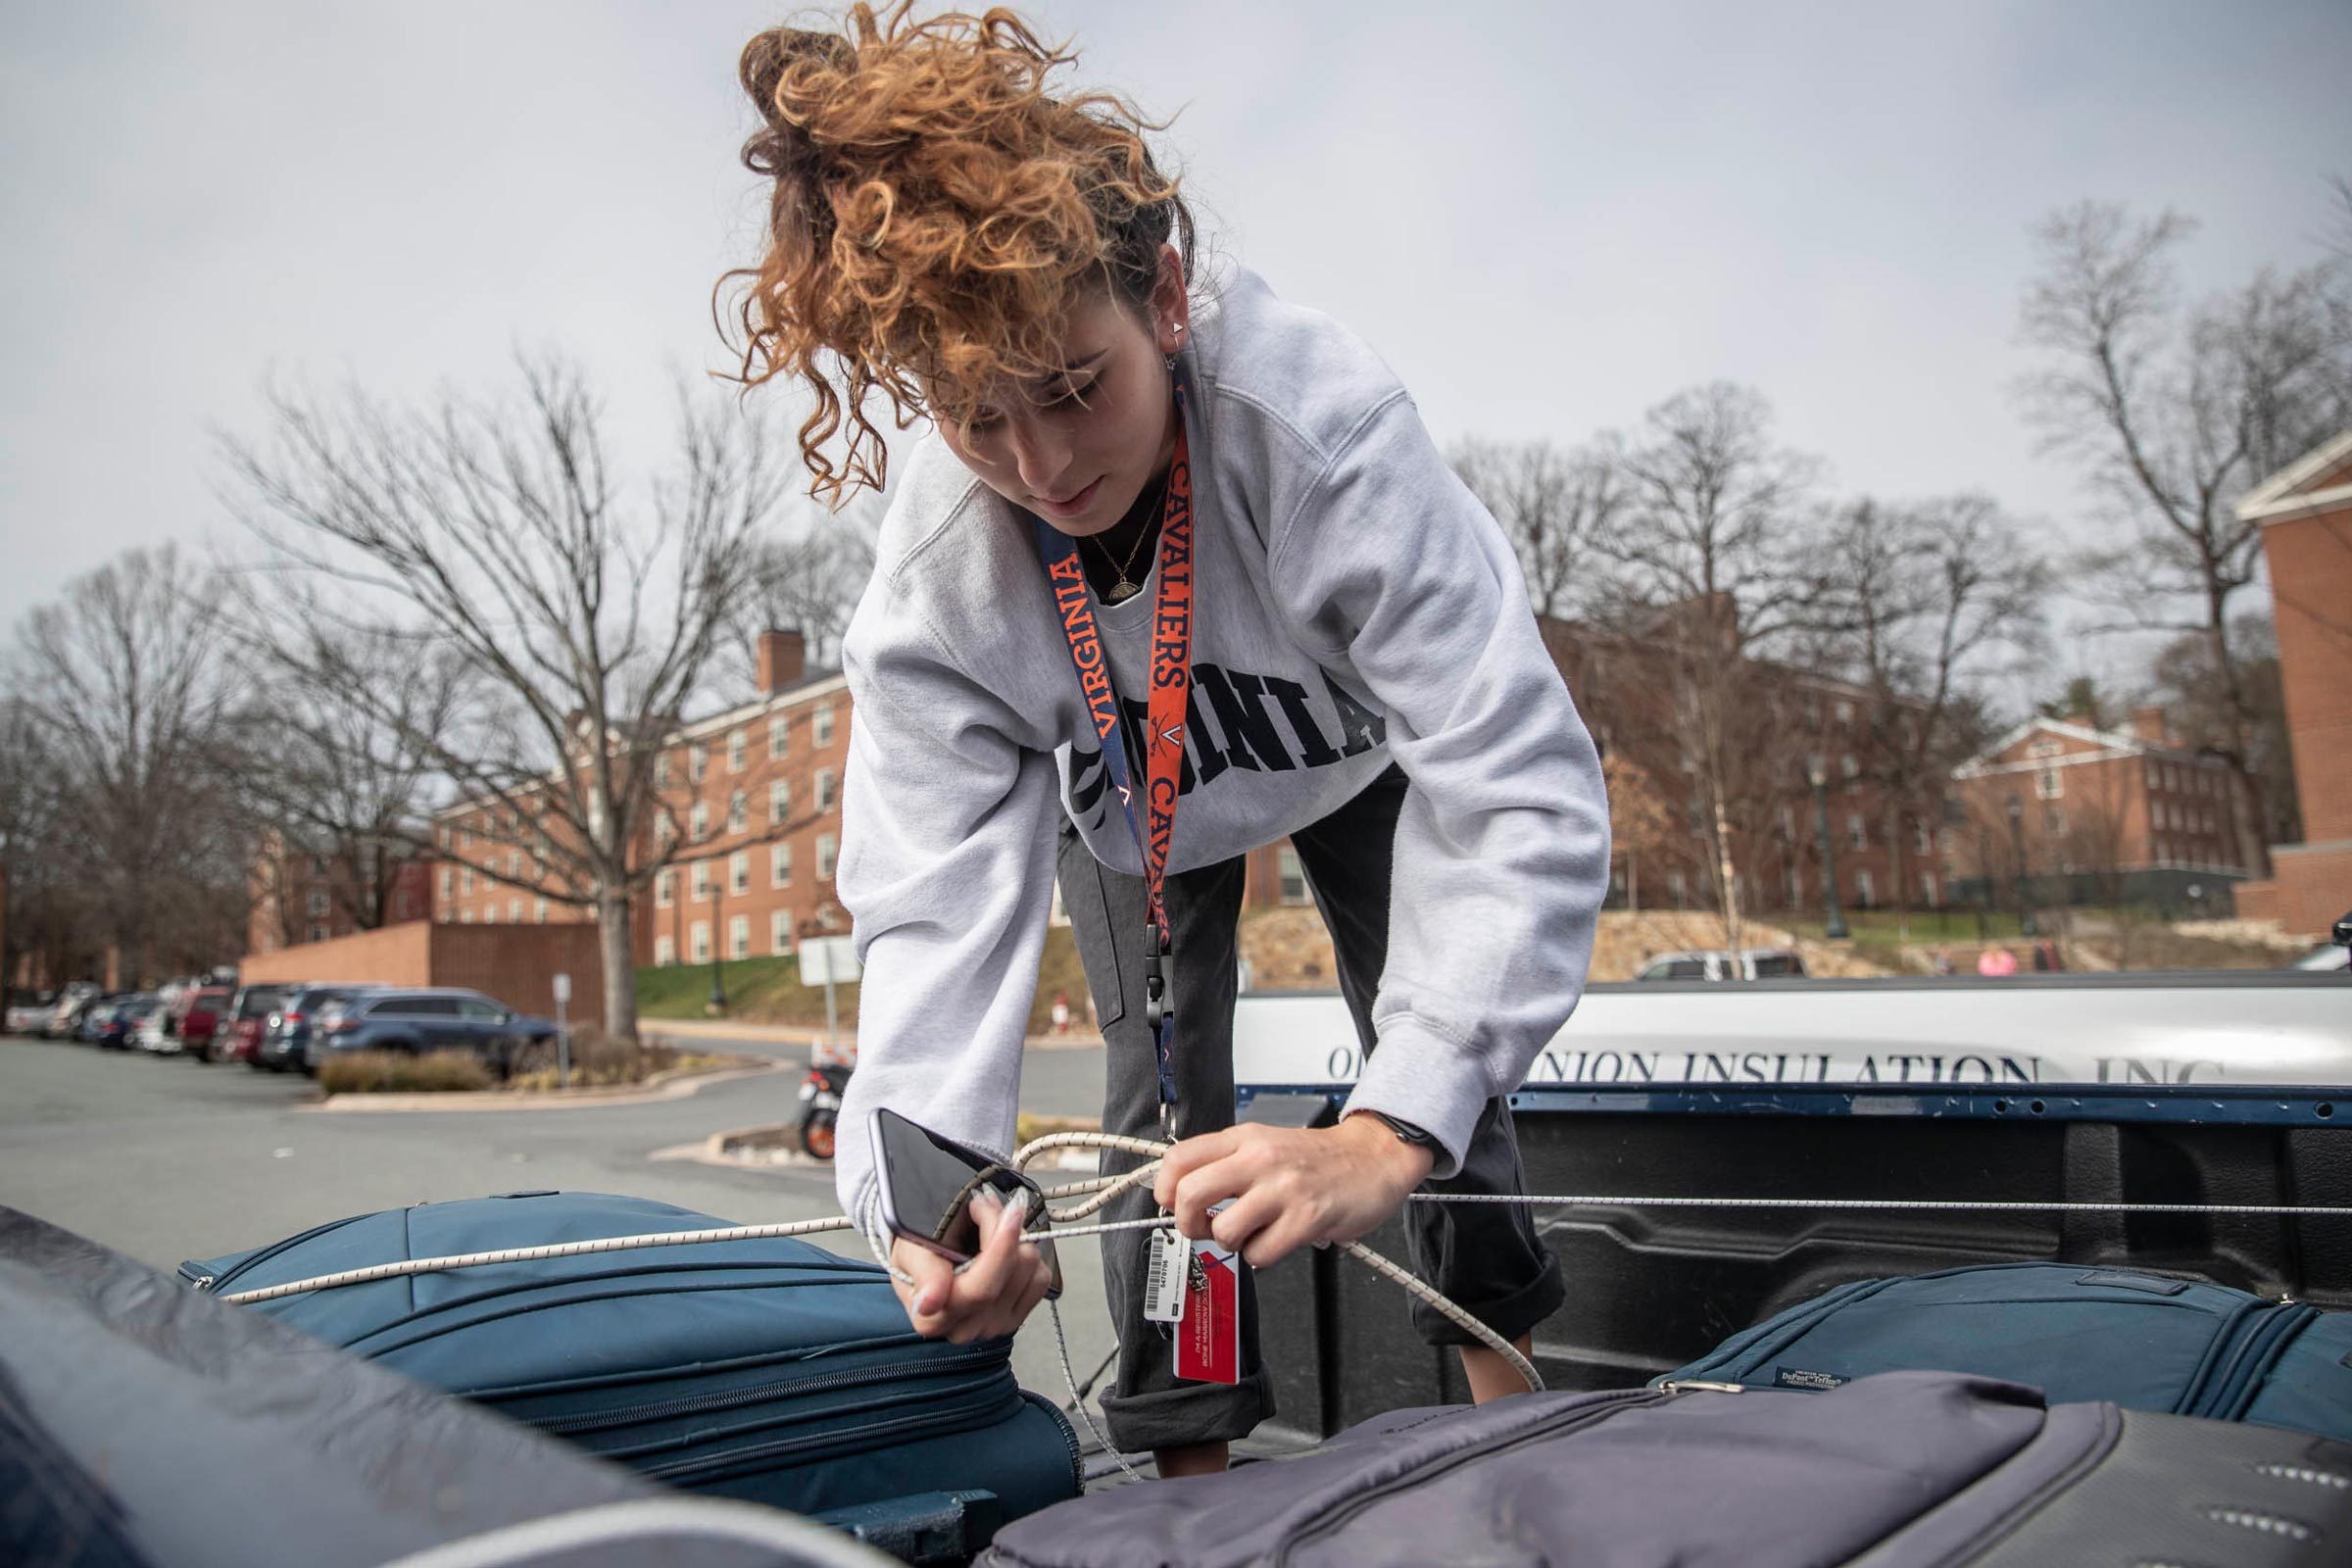 First-year student Tiana Santana from North Carolina secures her suitcases in the back of a truck as she moves out of her dorm. The University gave students until noon Wednesday to retrieve any belongings they wanted